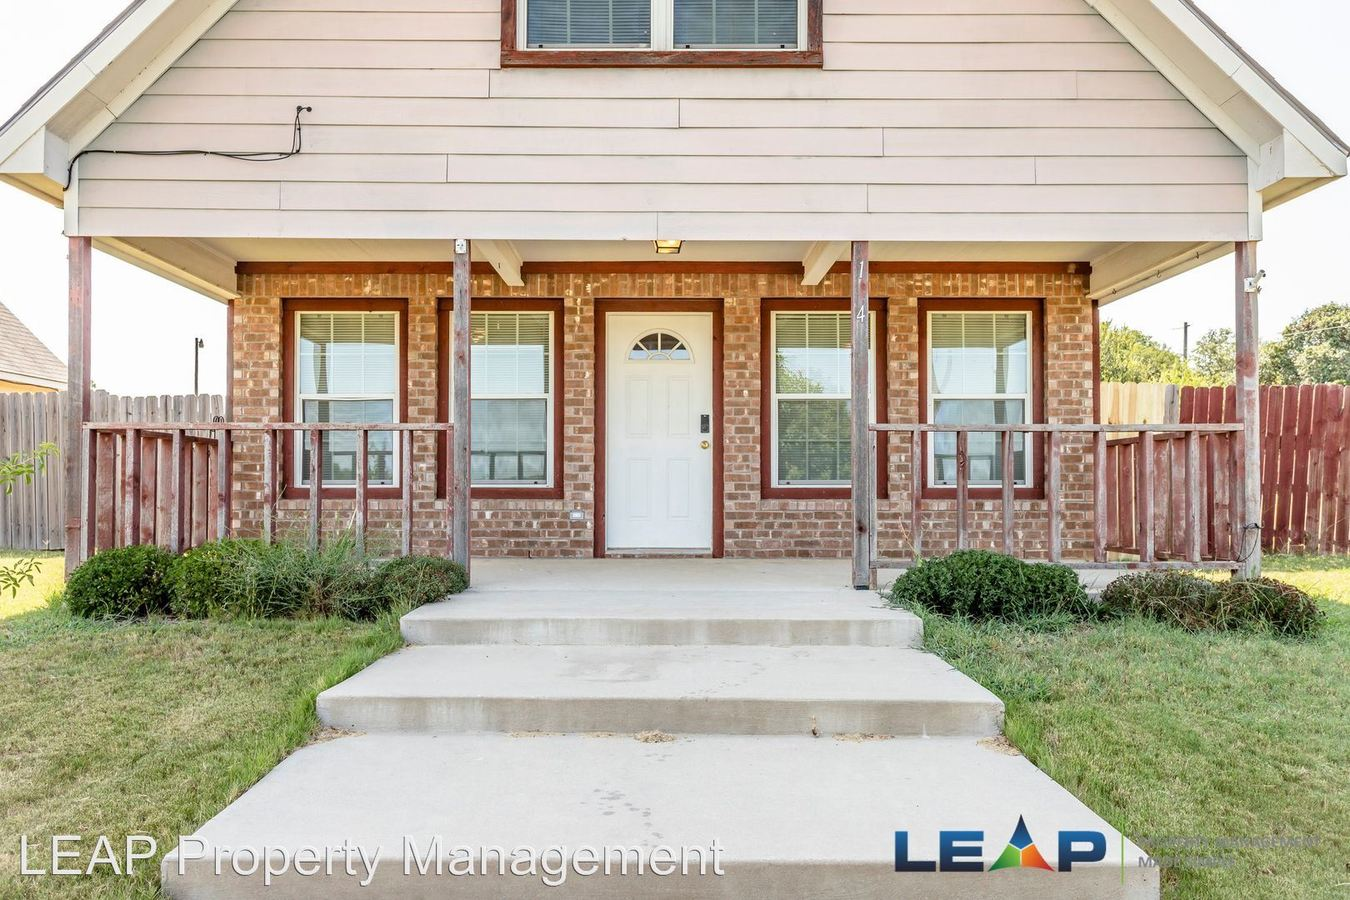 3 Bedrooms 2 Bathrooms Apartment for rent at 213 Pr 4573 in Boyd, TX